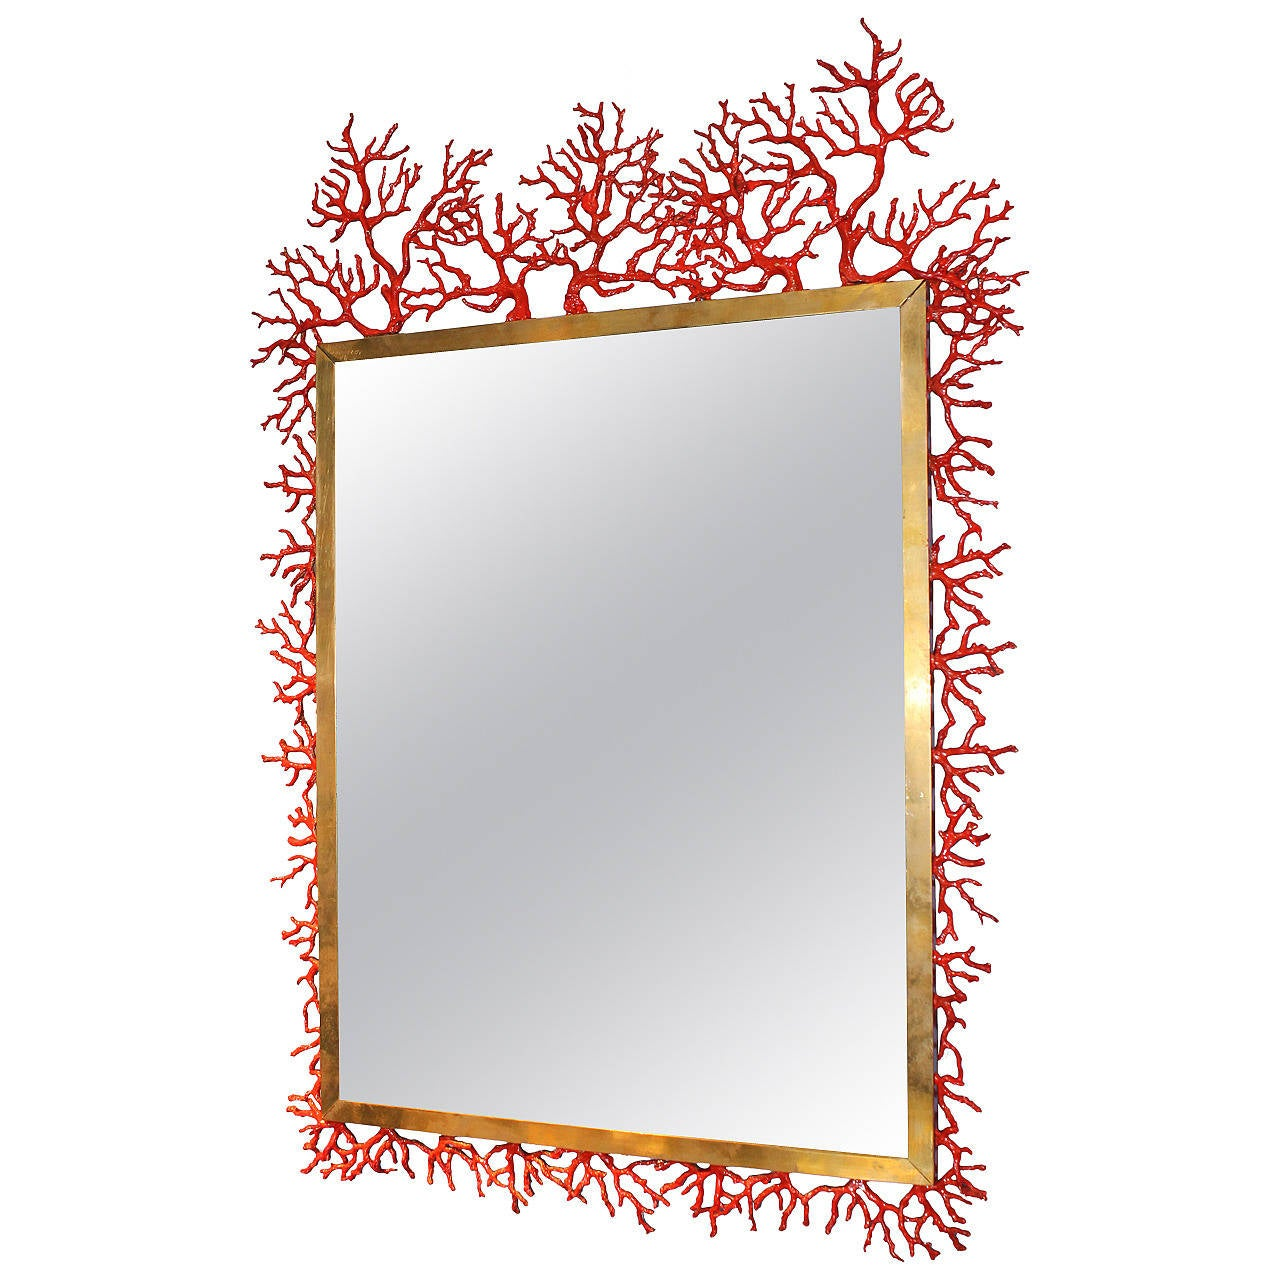 Coral Mirror By Robert Goossens At 1stdibs